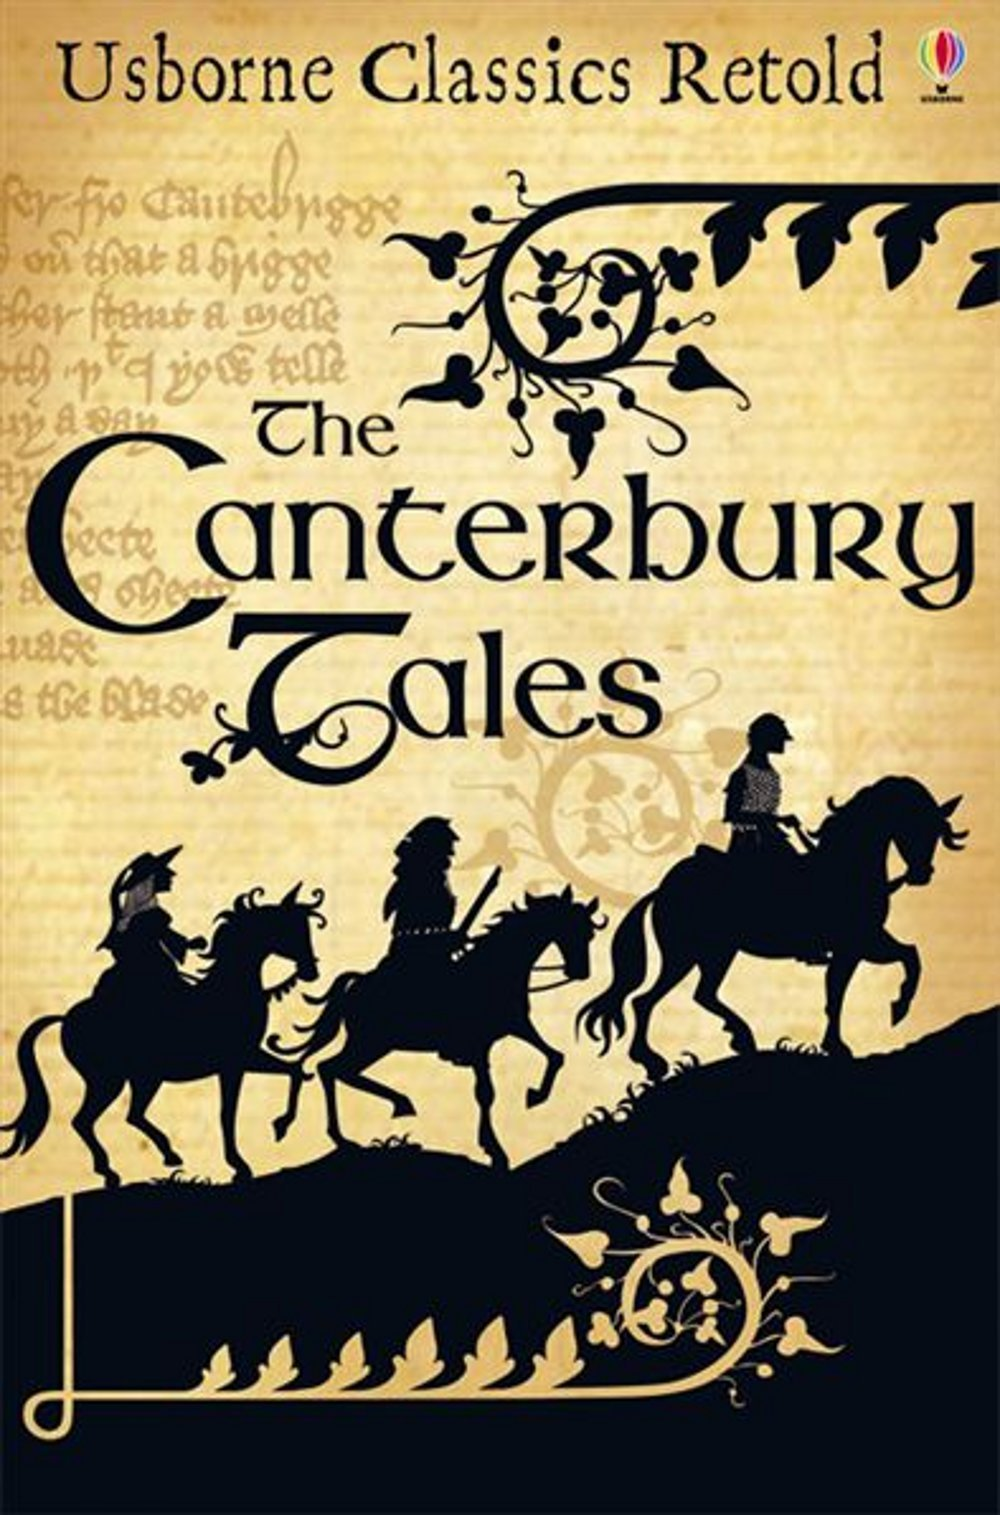 the theme of evil in the canterbury tales by geoffrey chaucer and the divine comedy by dante